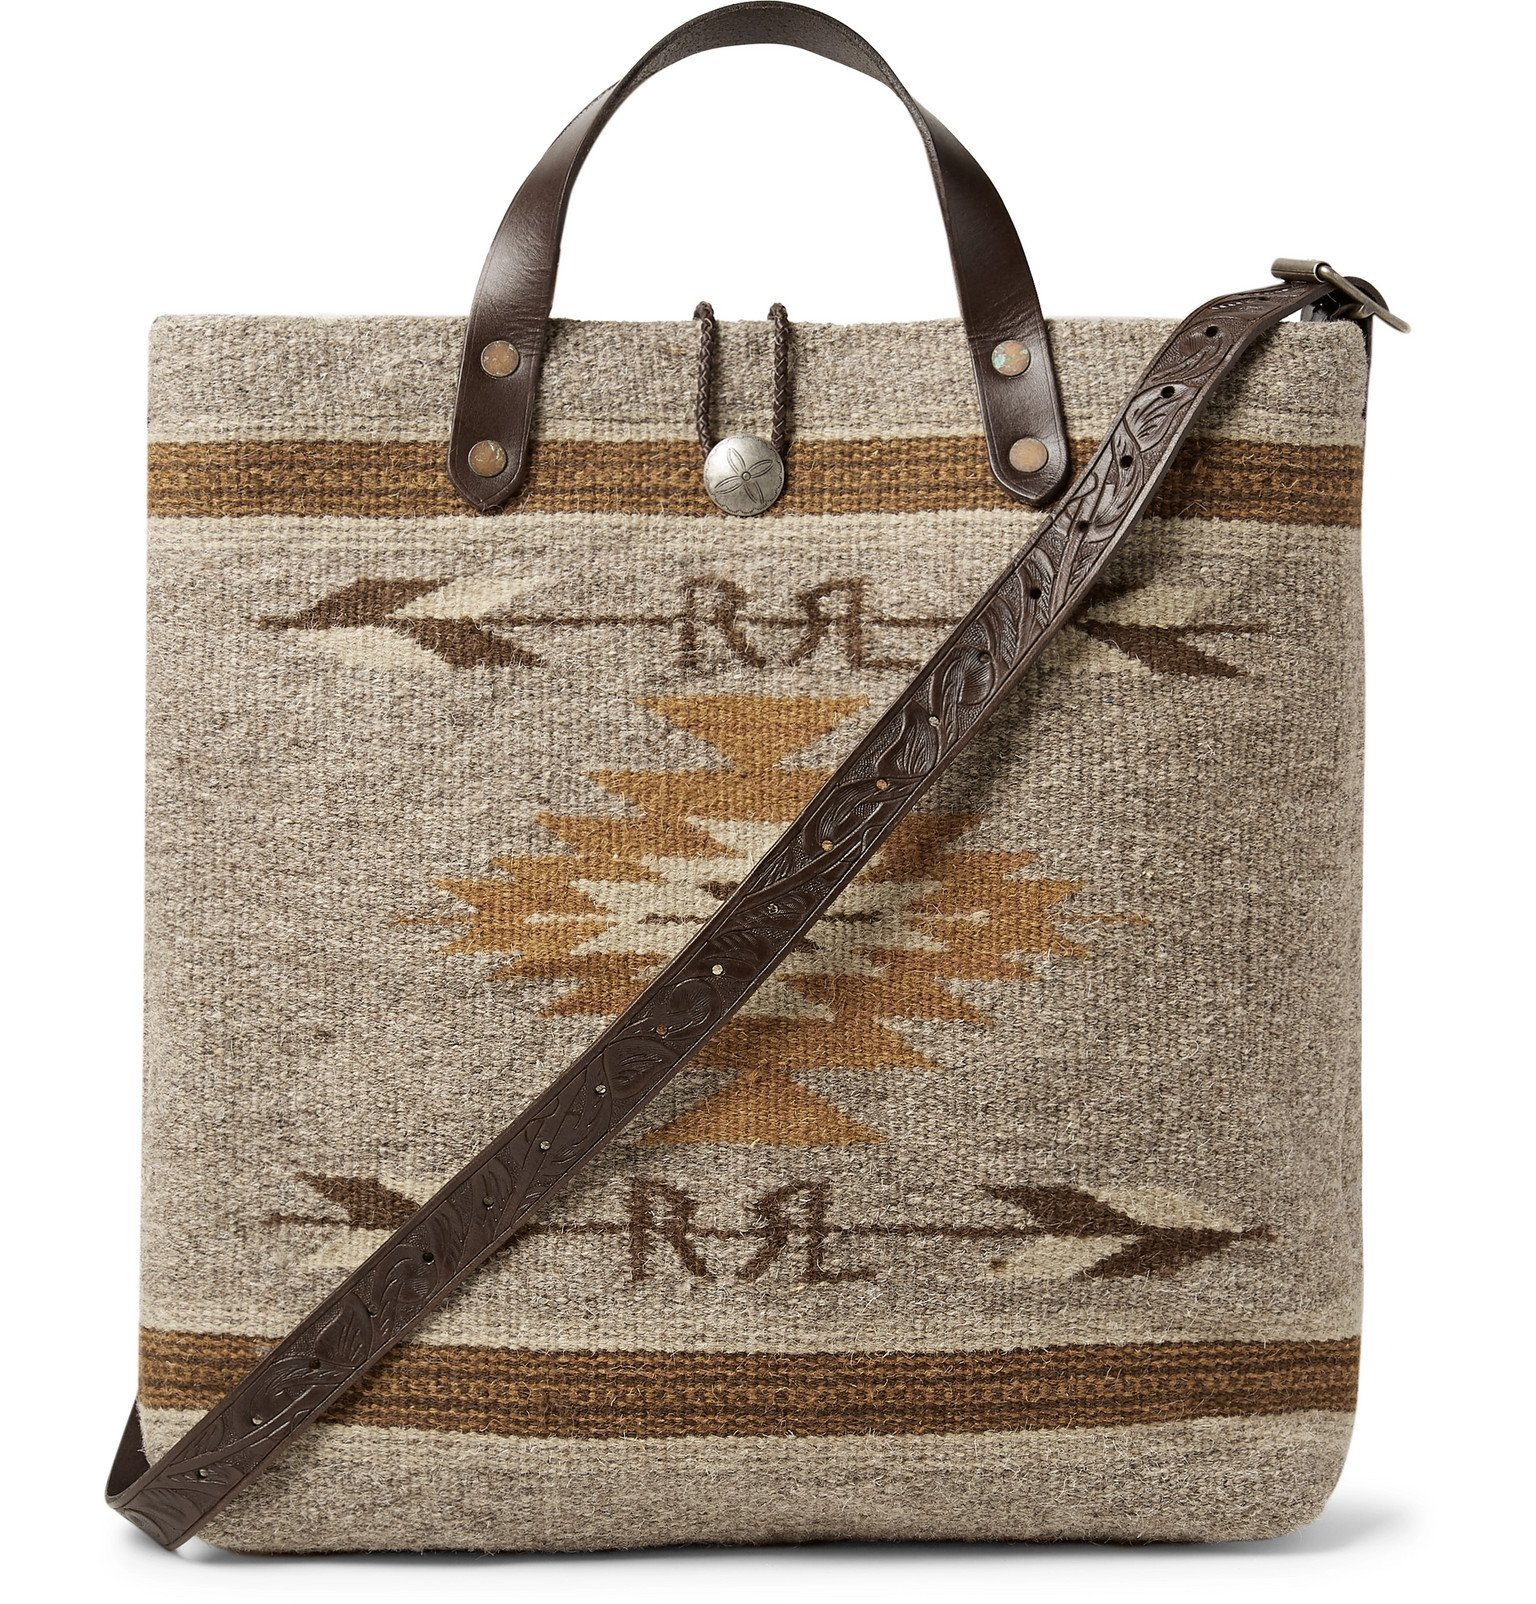 RRL - Garrett Leather-Trimmed Wool and Cotton-Blend Tote Bag - Brown